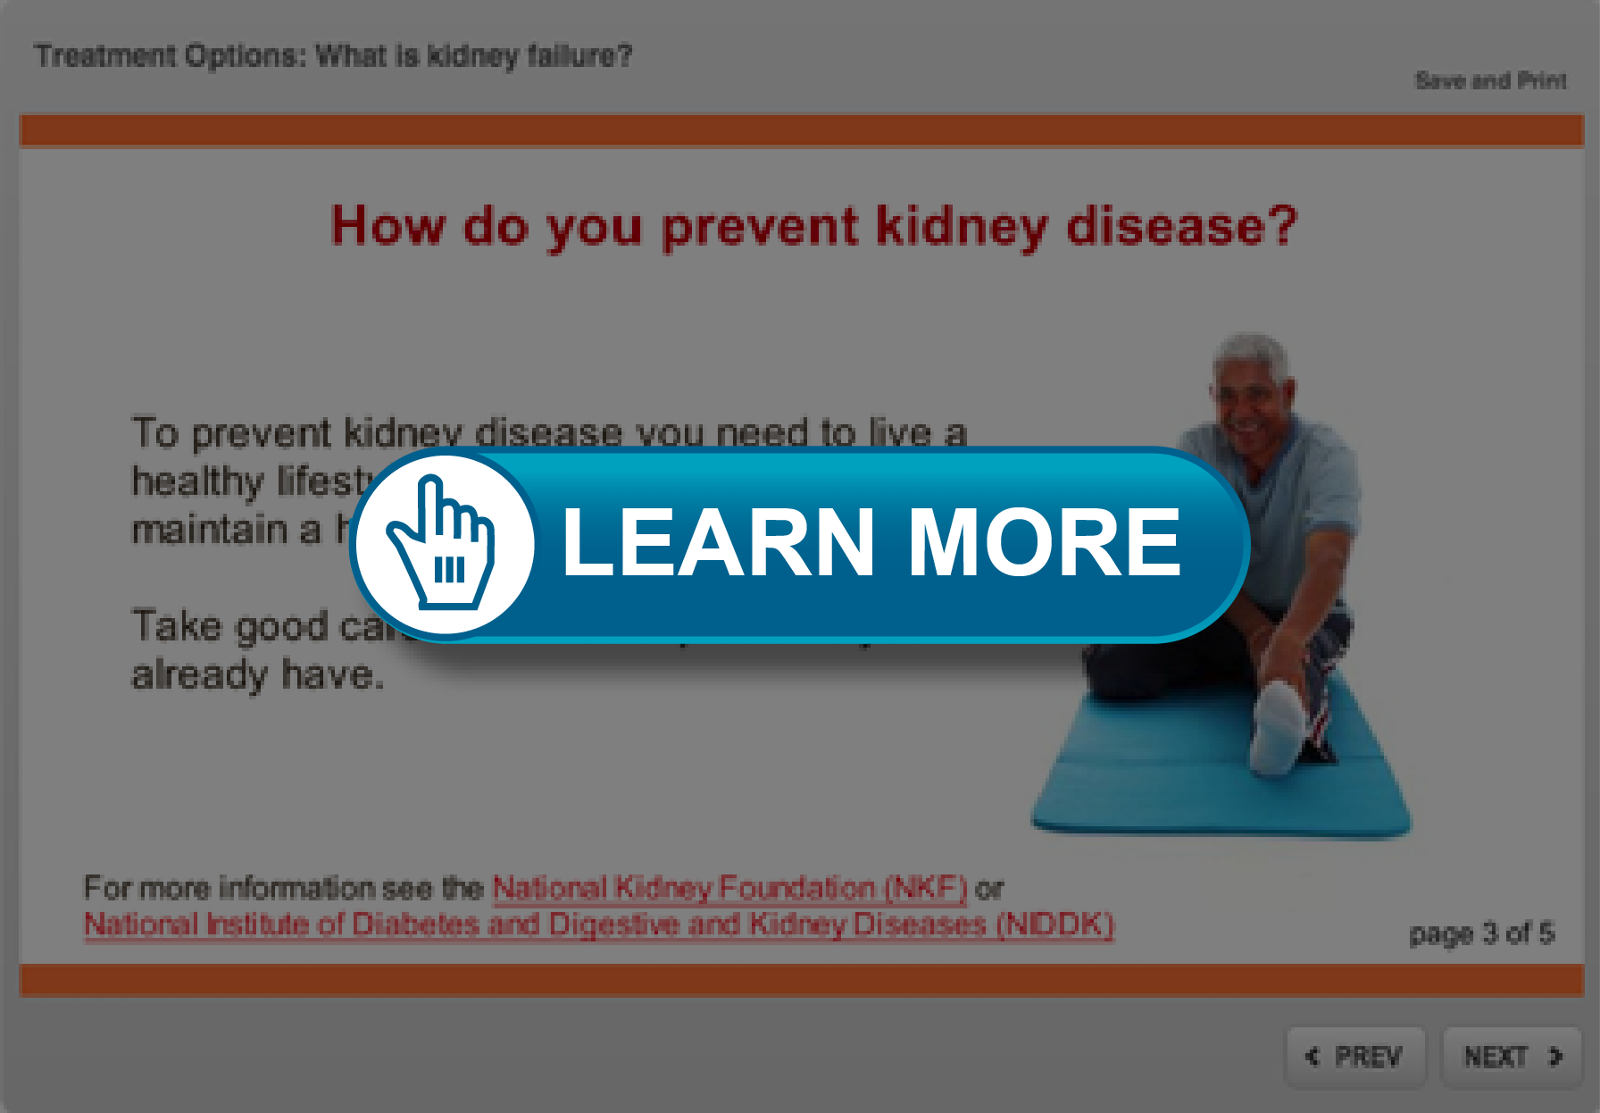 /resources/images/kidneyFail